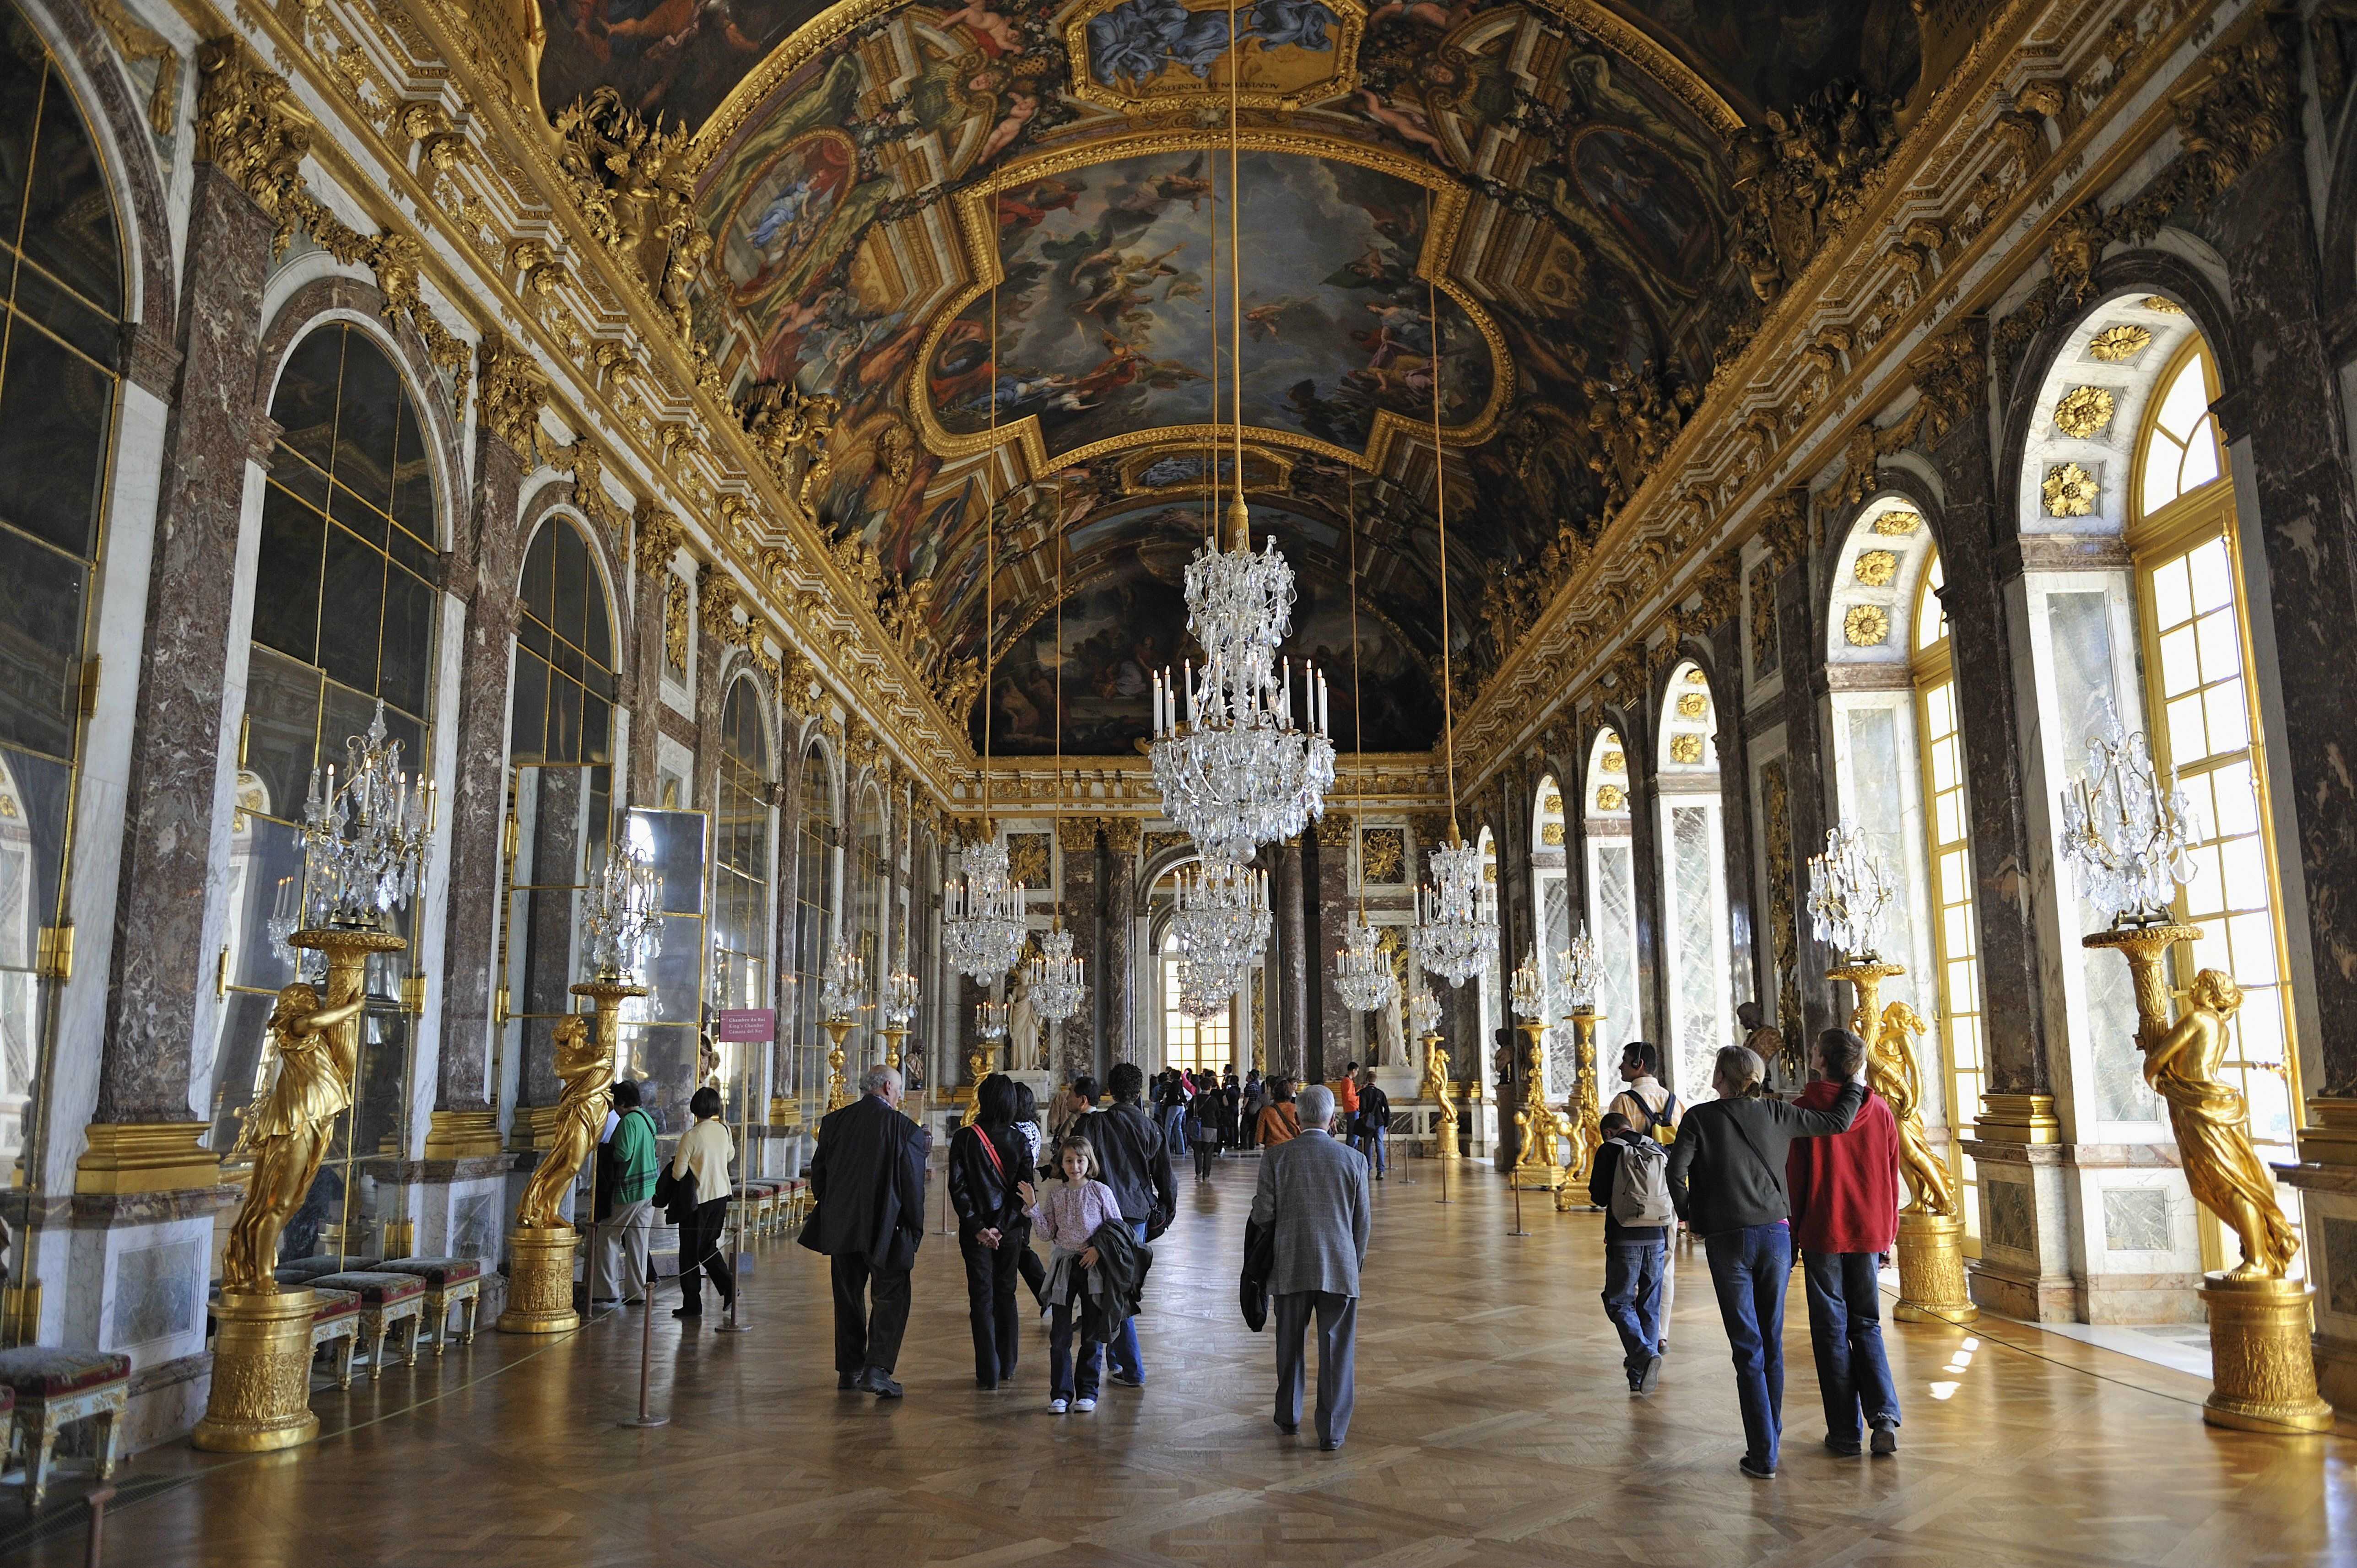 Large, Baroque marble hallway with statues and mirrors in the Palace of Versailles